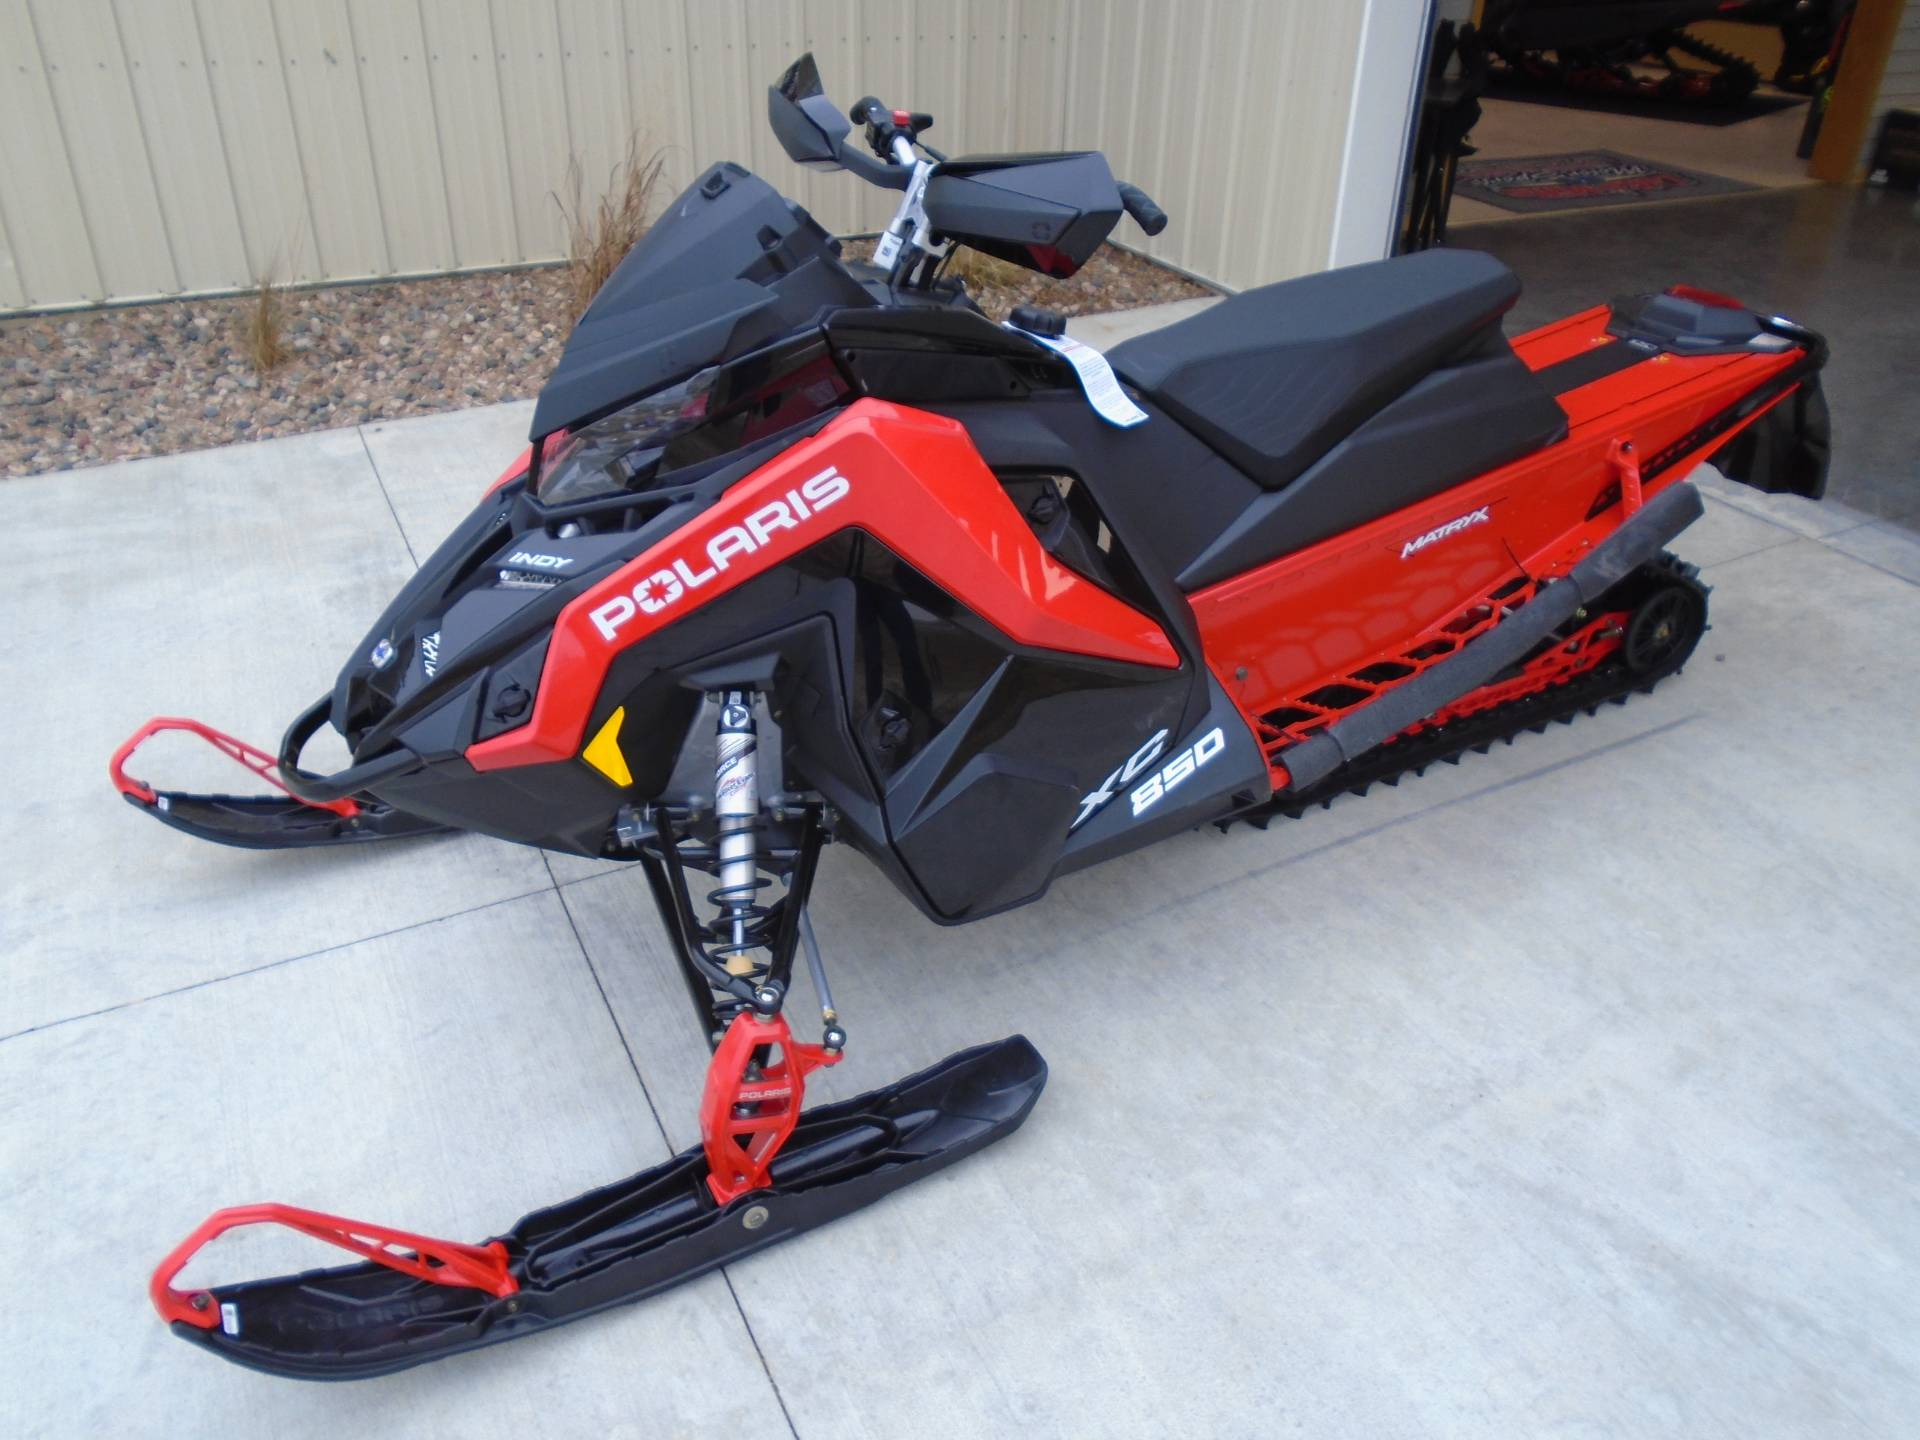 2021 Polaris 850 Indy XC 129 Launch Edition Factory Choice in Lake Mills, Iowa - Photo 1